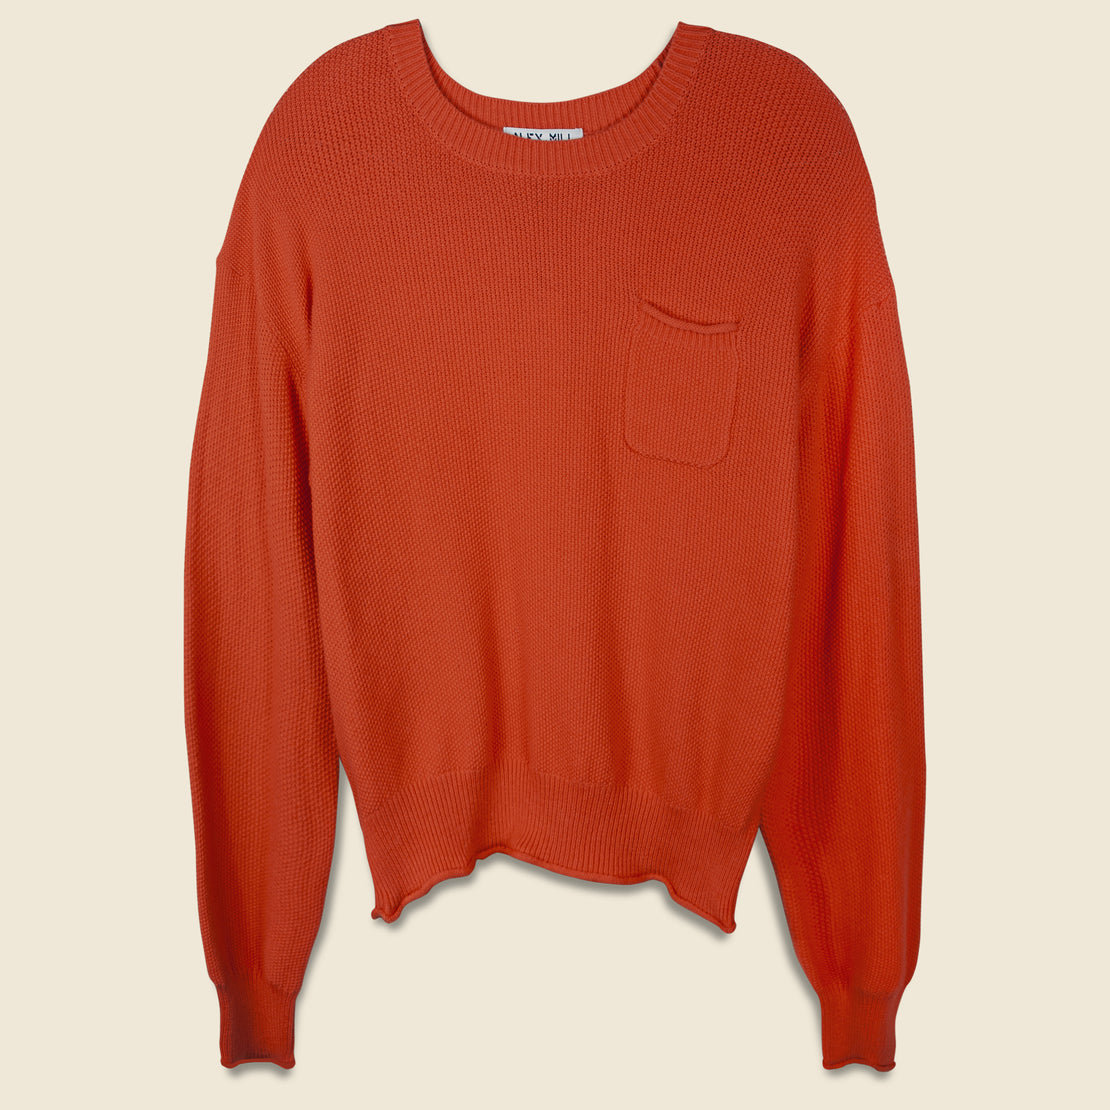 Alex Mill Boxy Seed Pocket Sweater - Flame Lily